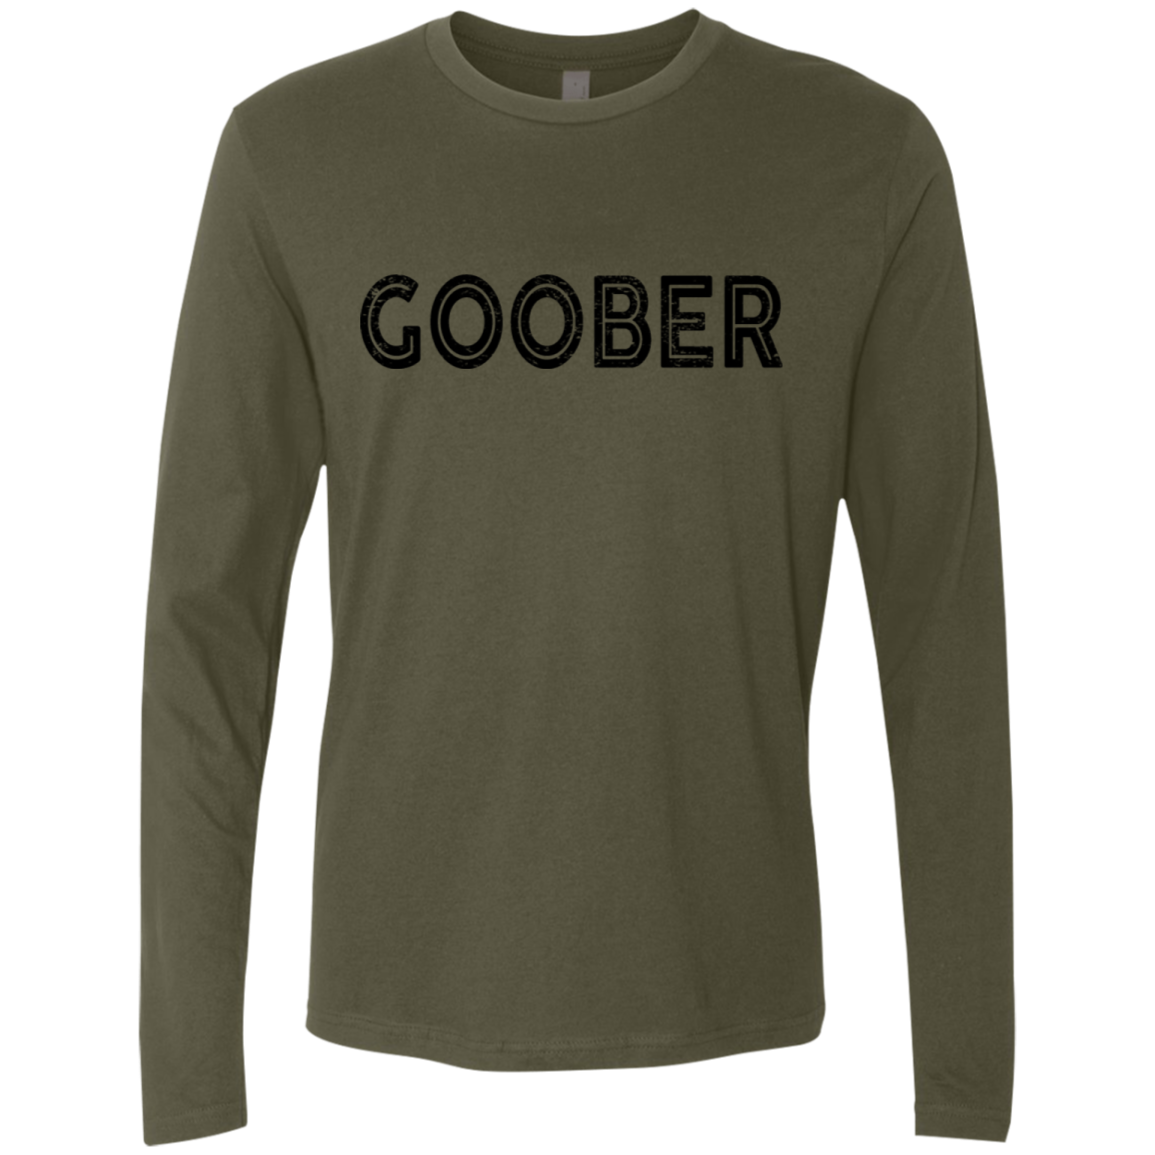 Goober Men's Long Sleeve Tee